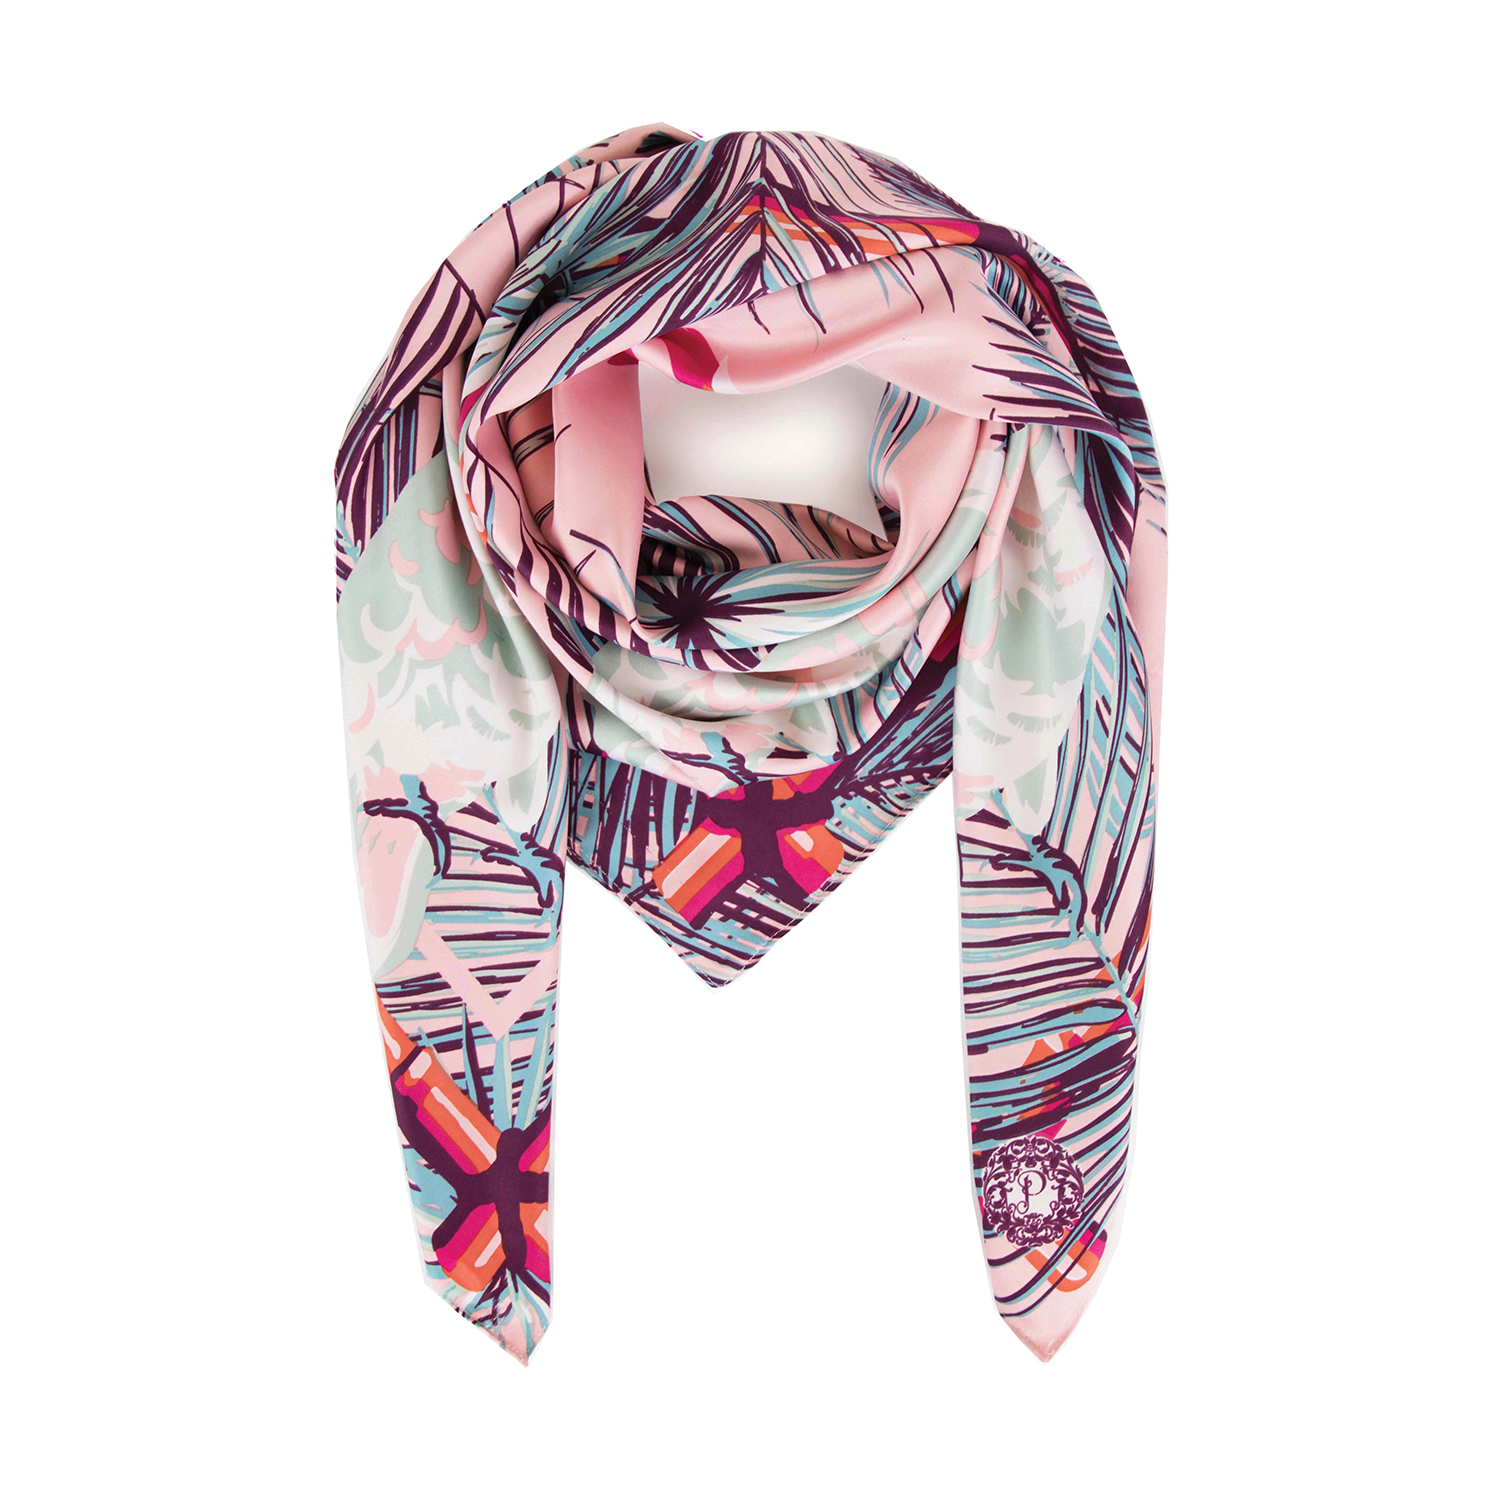 Powder – Cockatoo Satin Square Scarf with Powder Presentation Gift Bag